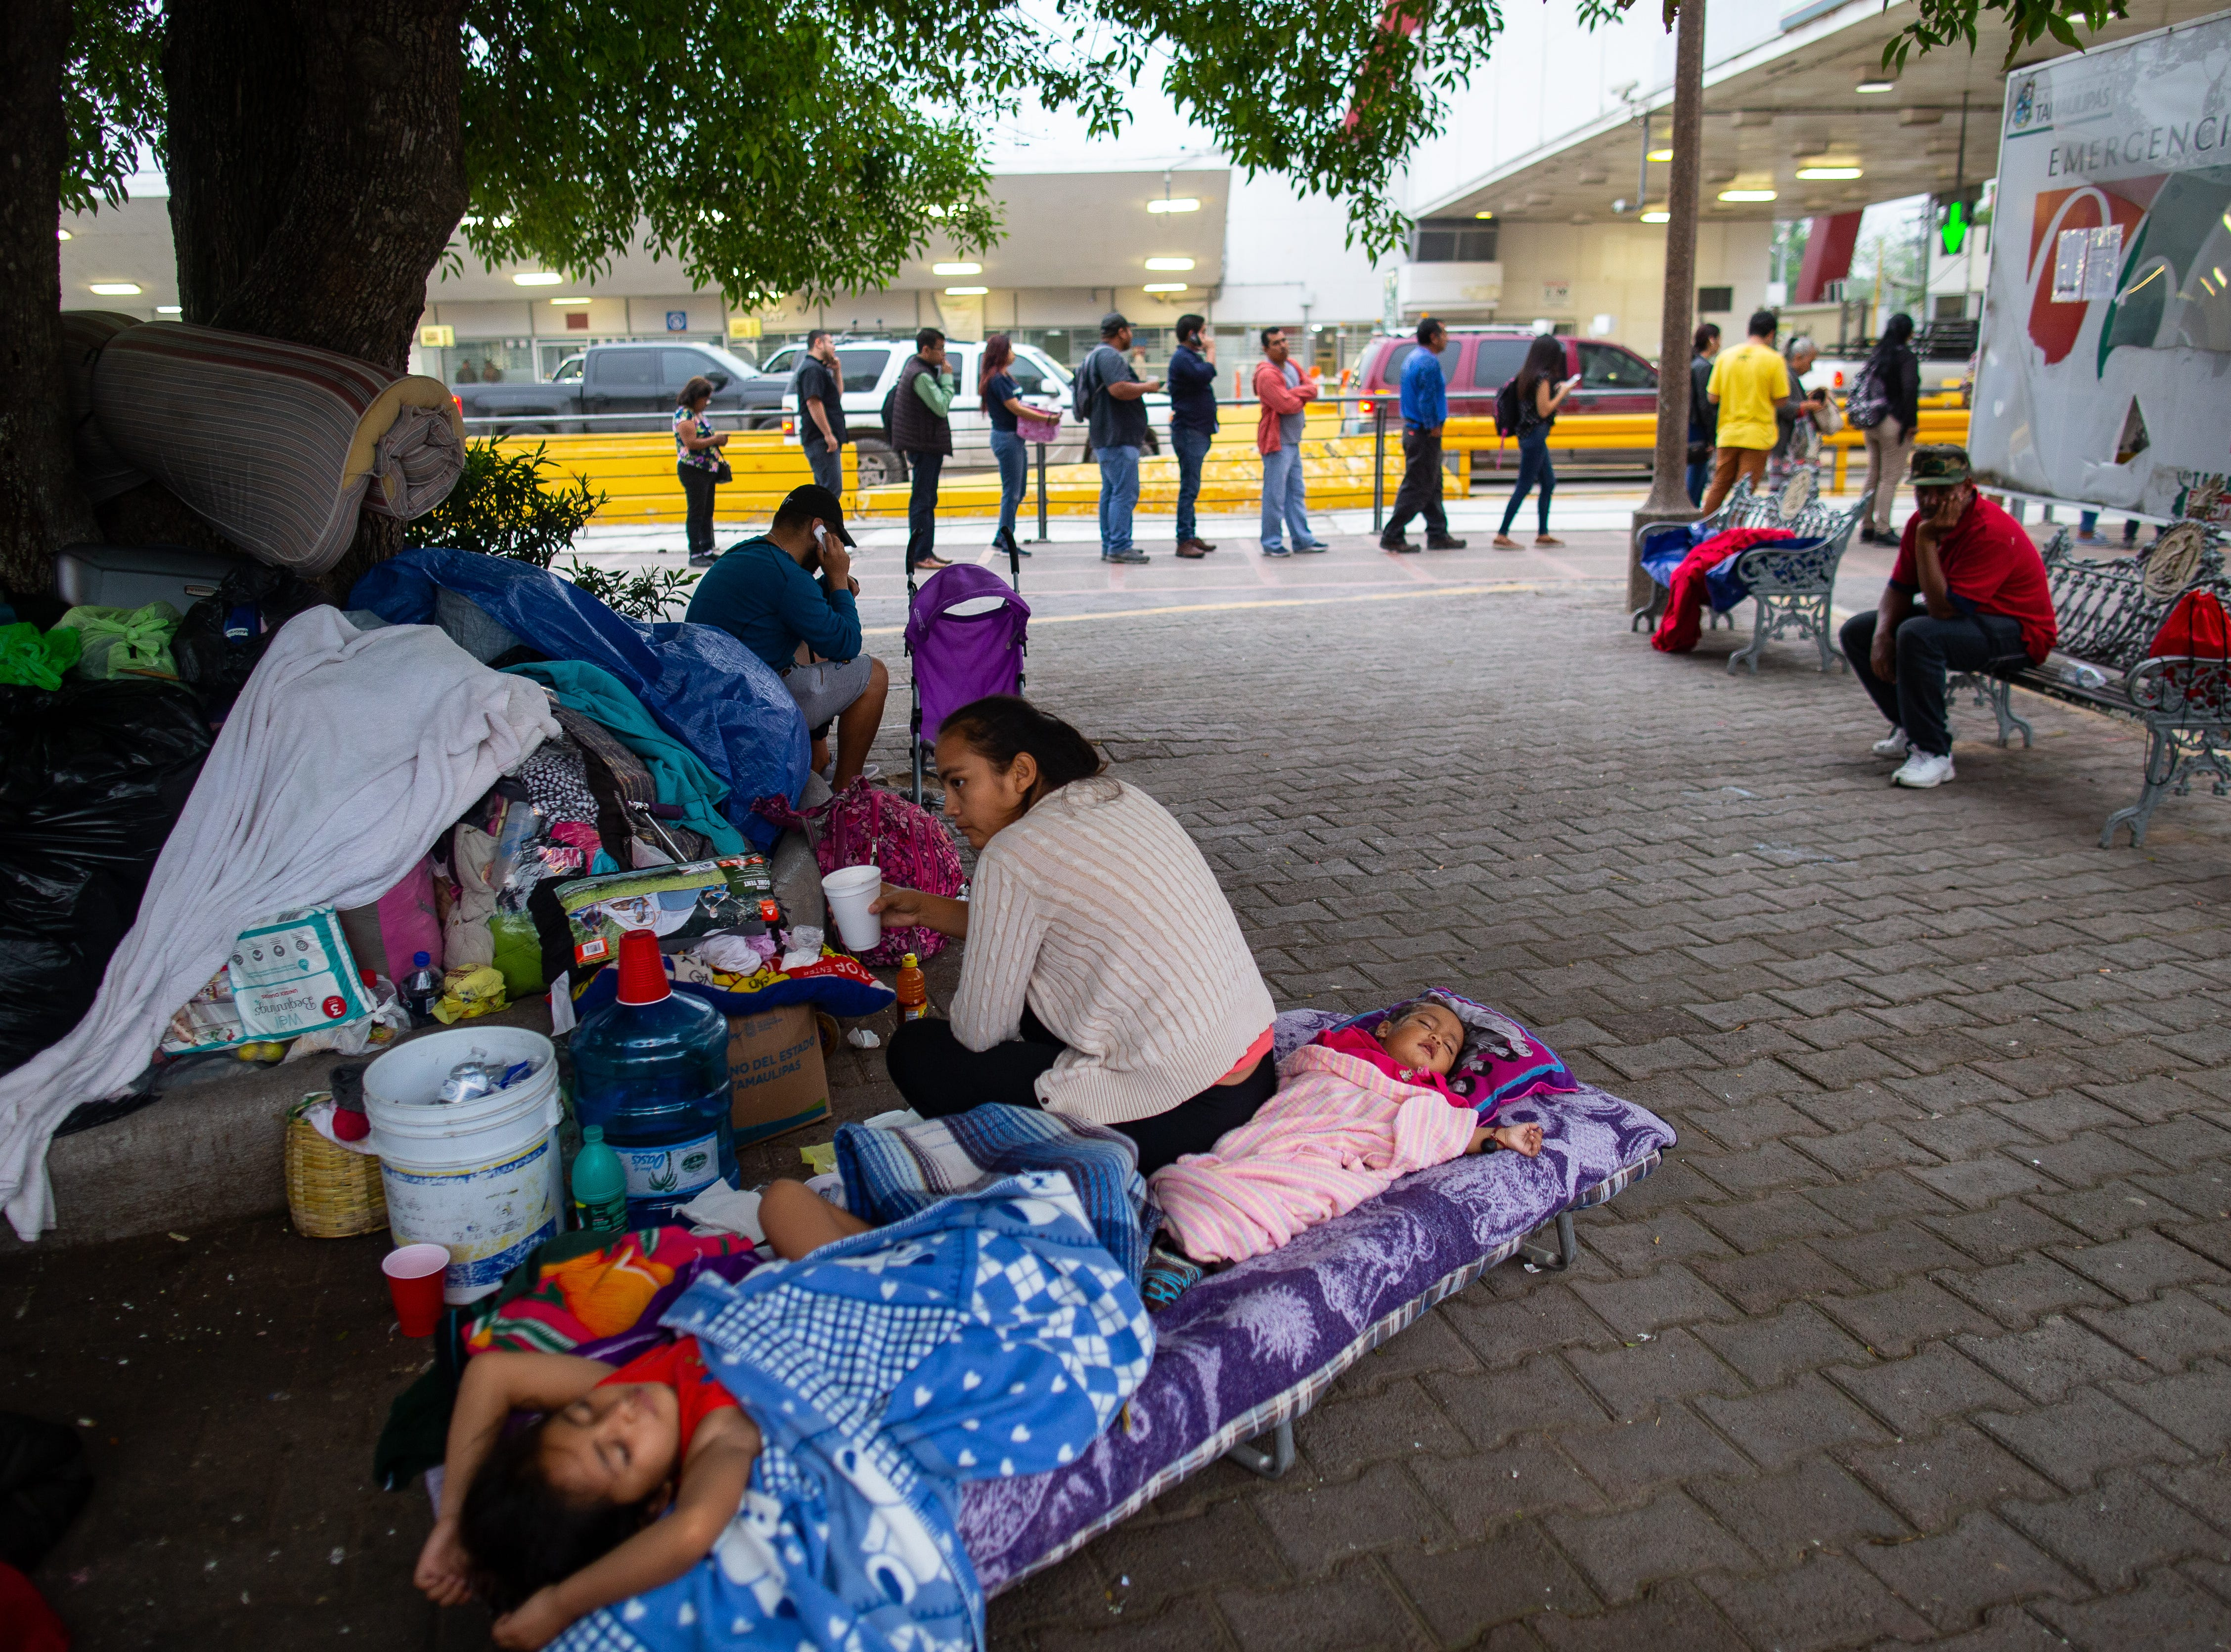 Migrants from El Salvador including 7-month old Violet and 6-year-old Joanna sleep on a cot in a makeshift camp on the Matamoros Mexico side of the Gateway International Bridge as their families wait to apply for asylum in the U.S. on Friday, April 5, 2019.